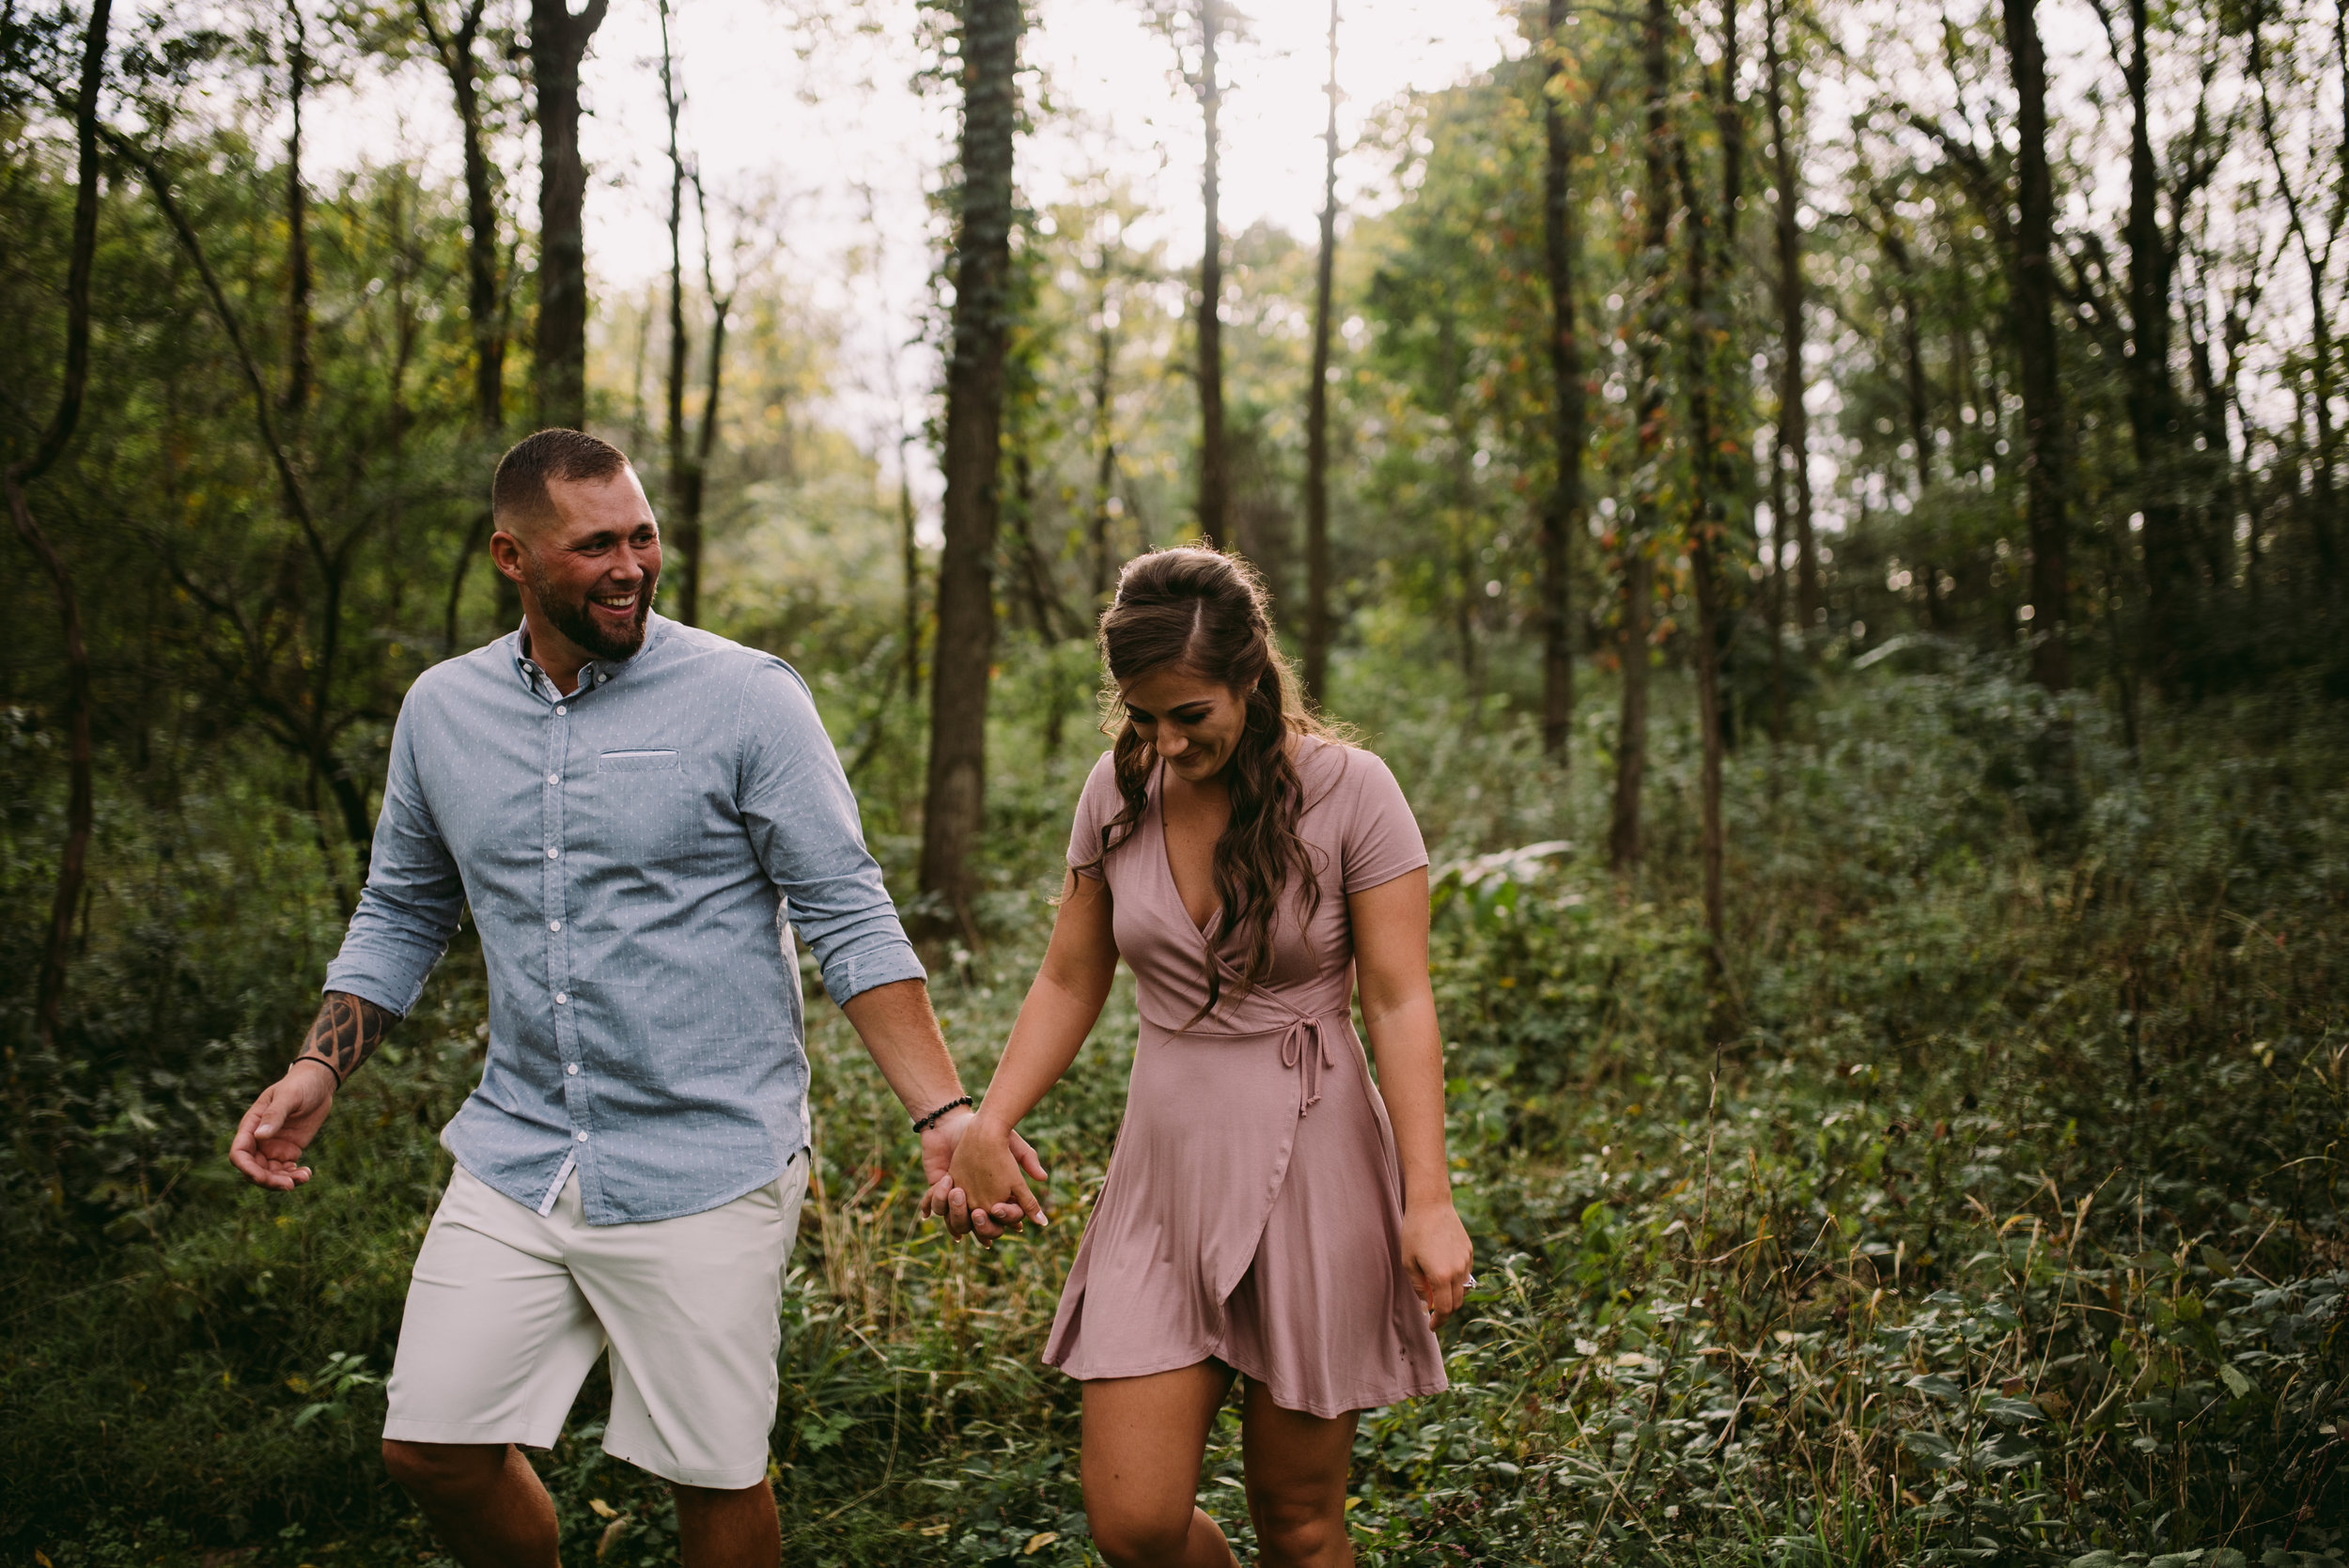 Brooke&Blake_EngagementSession_October2018_SamanthaRosePhotography_040.JPG